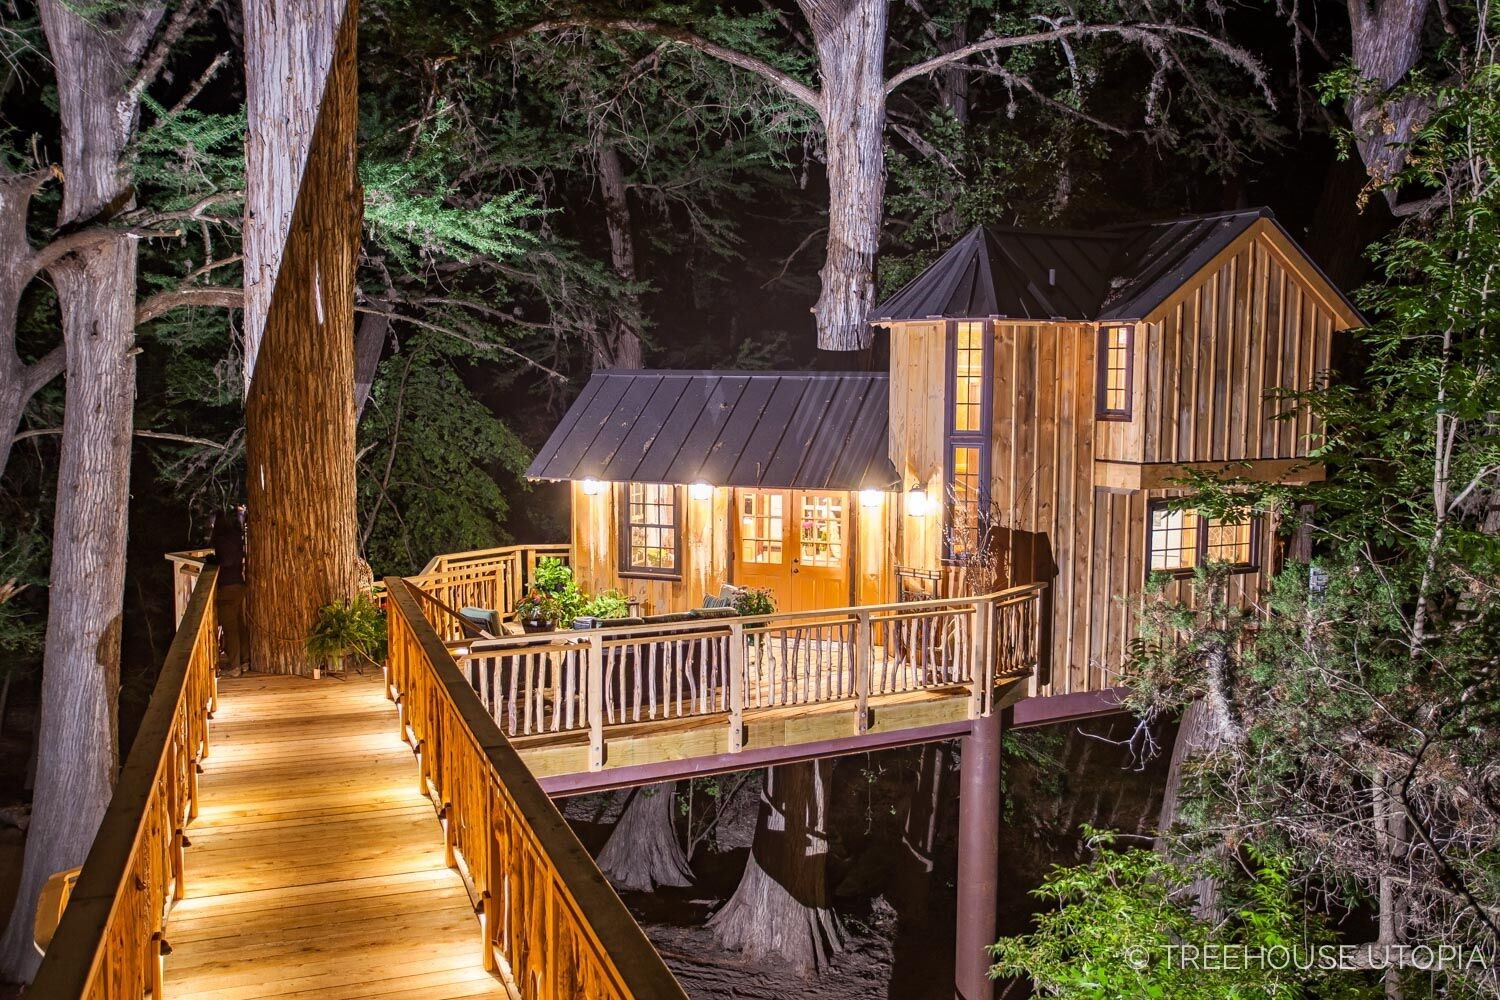 treehouse utopia renew refresh relax